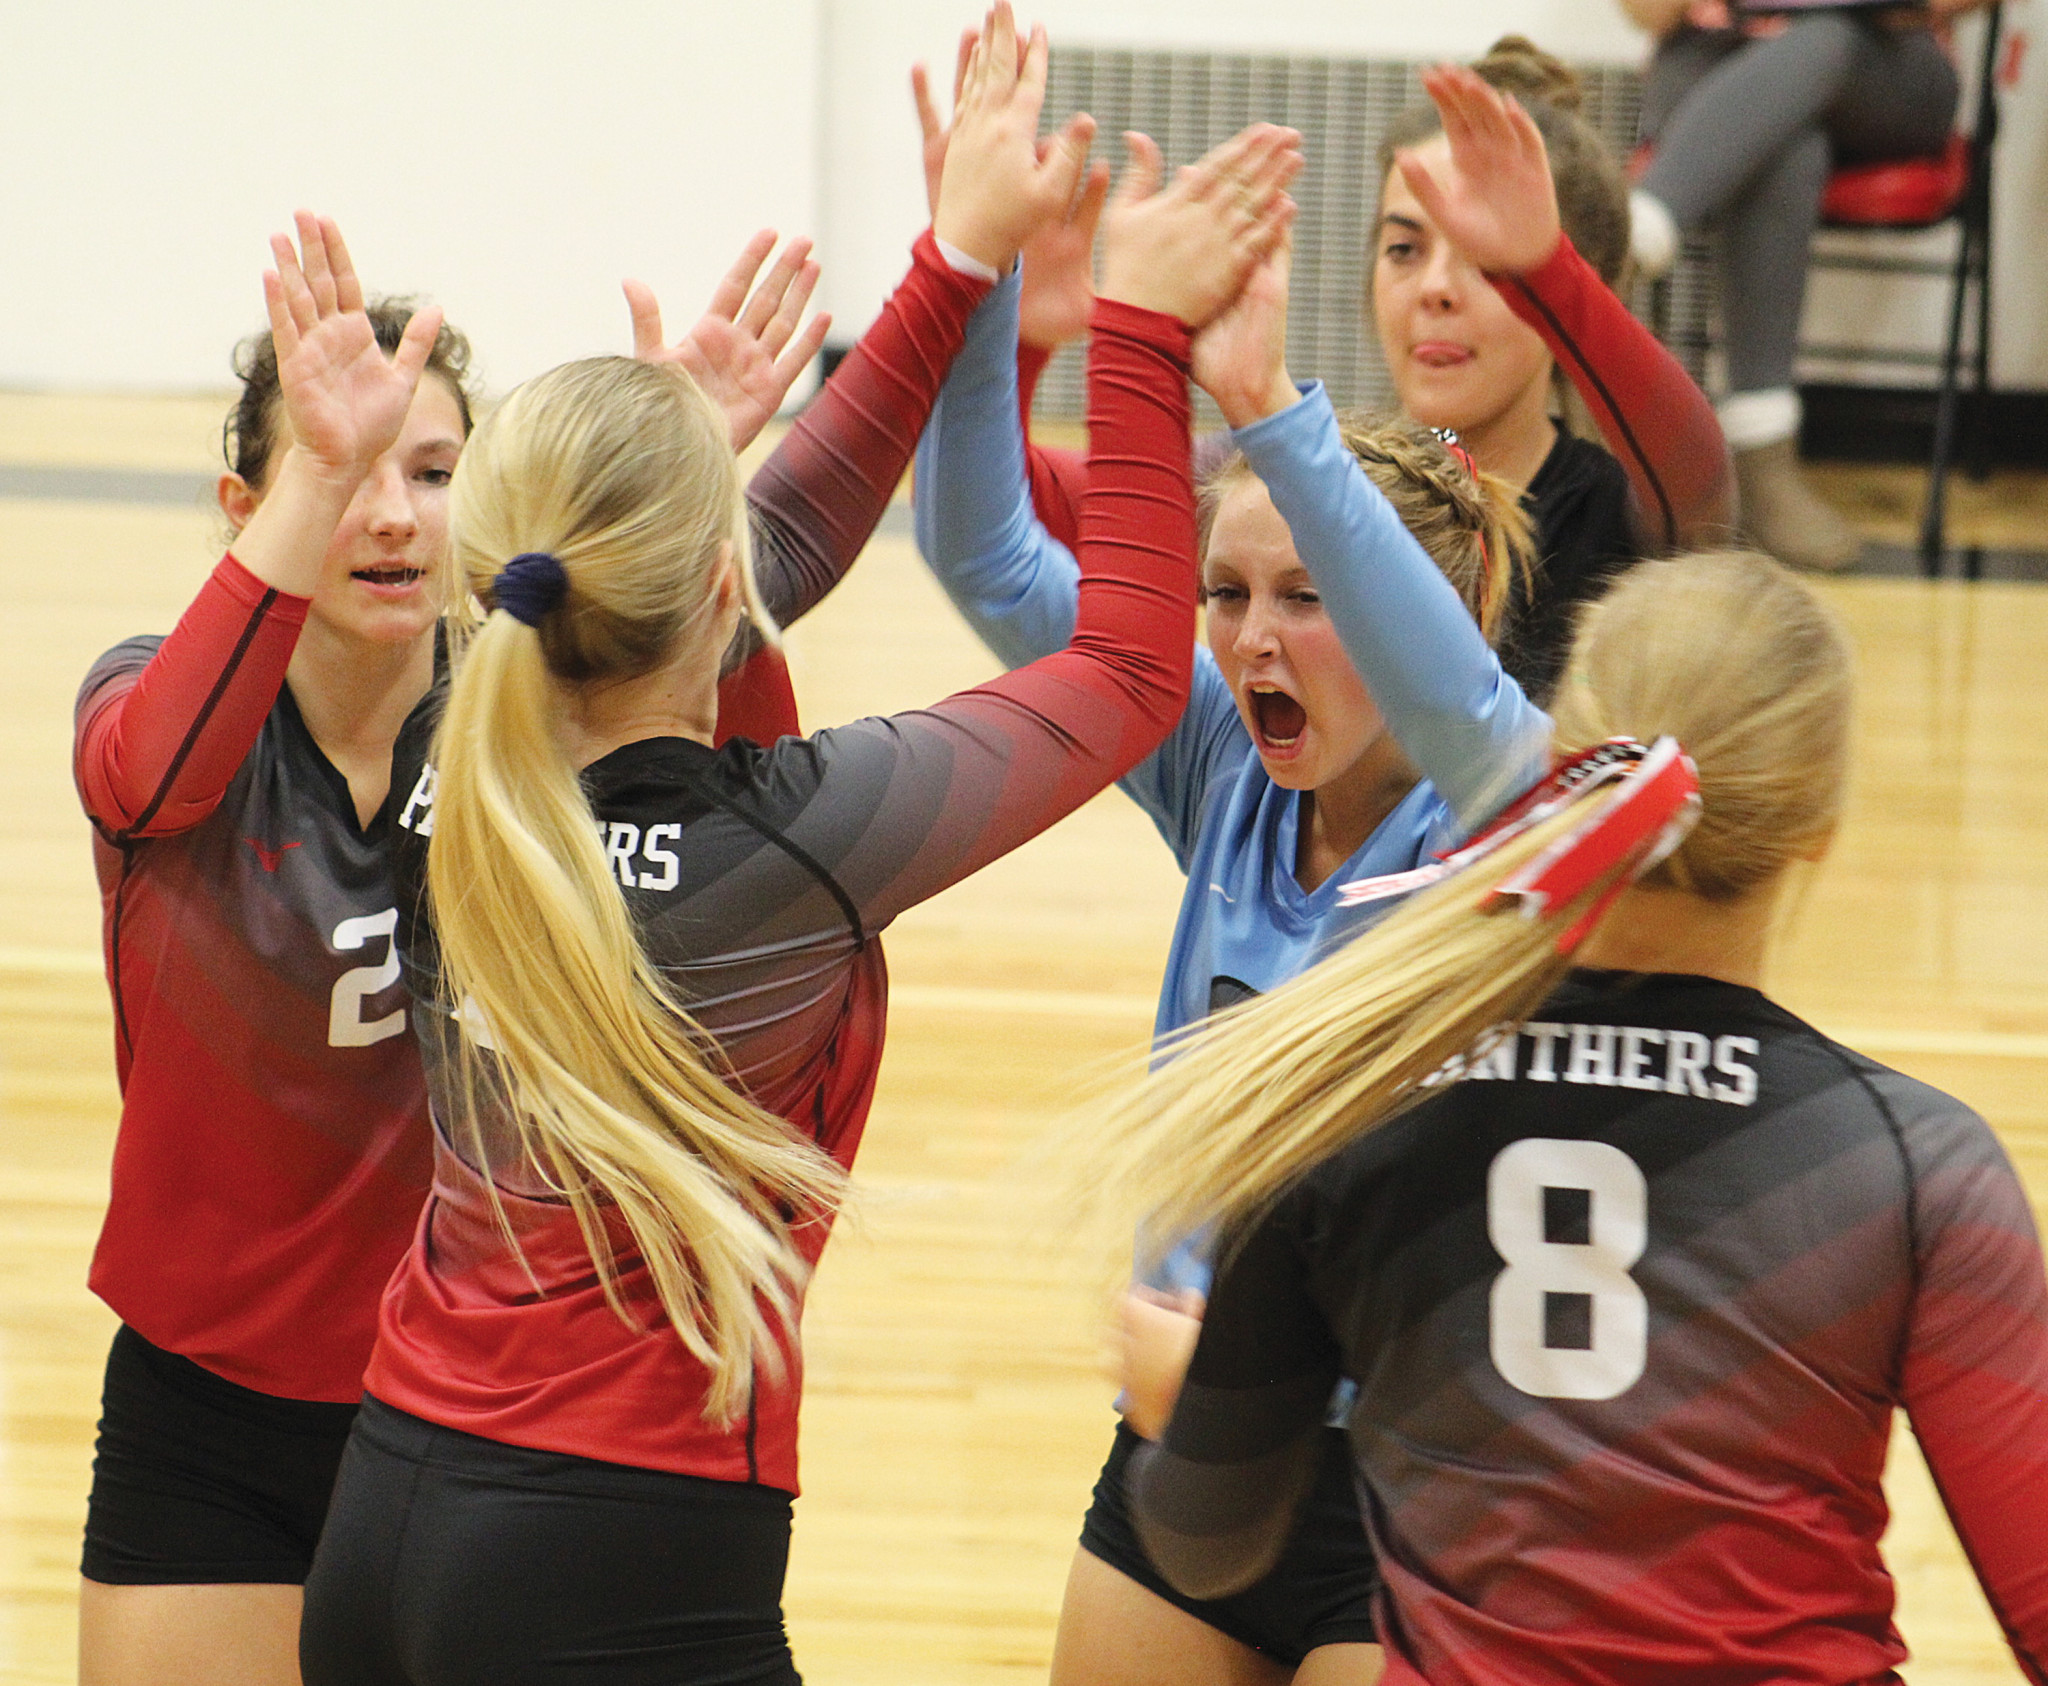 The volleyball team celebrates a good play.